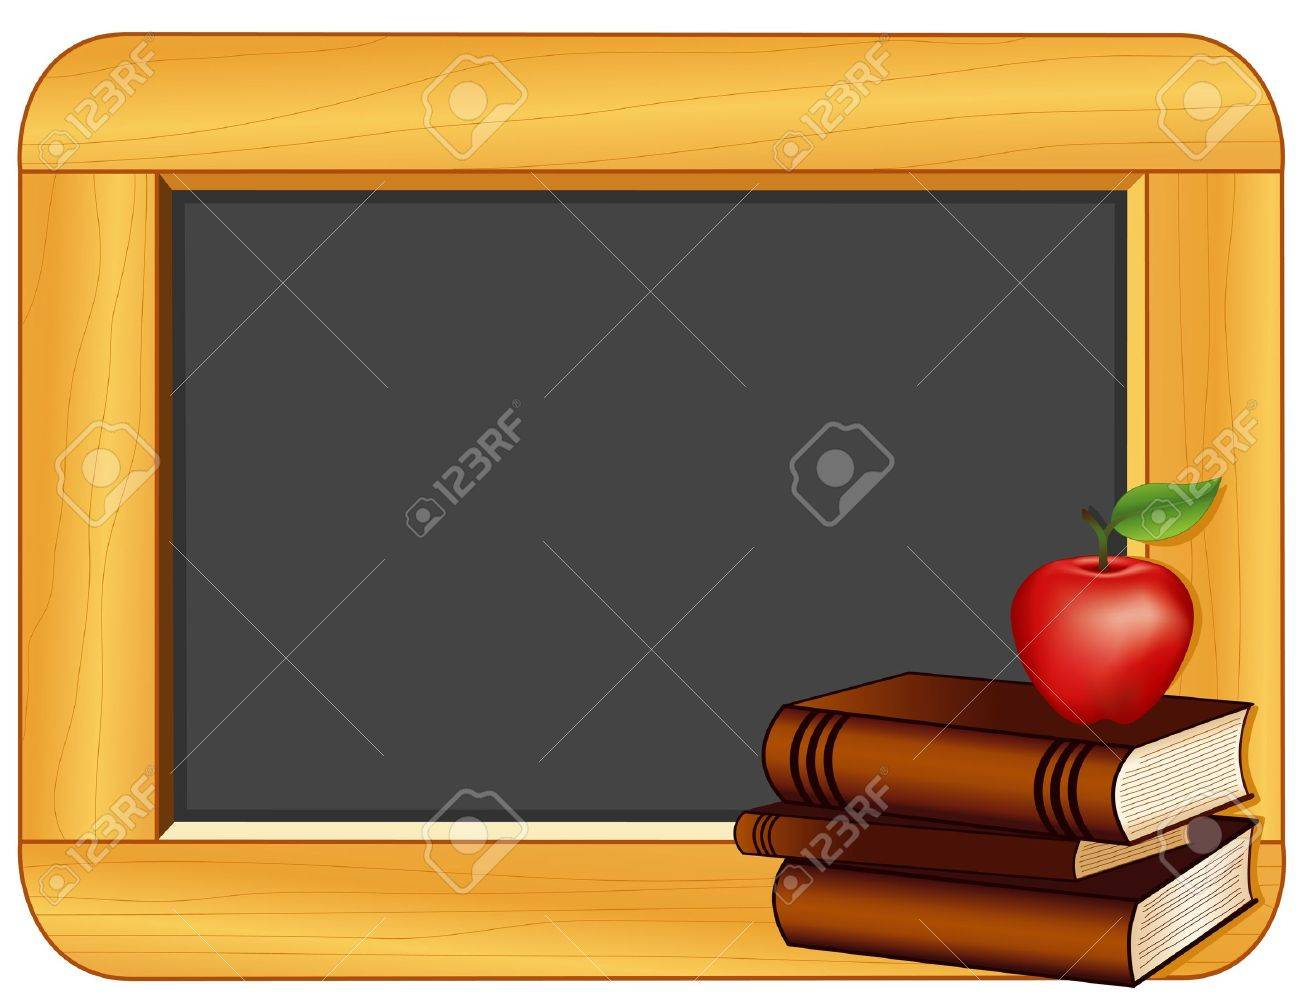 Books, Apple, Blackboard with copy space for education and back to school projects - 13675618